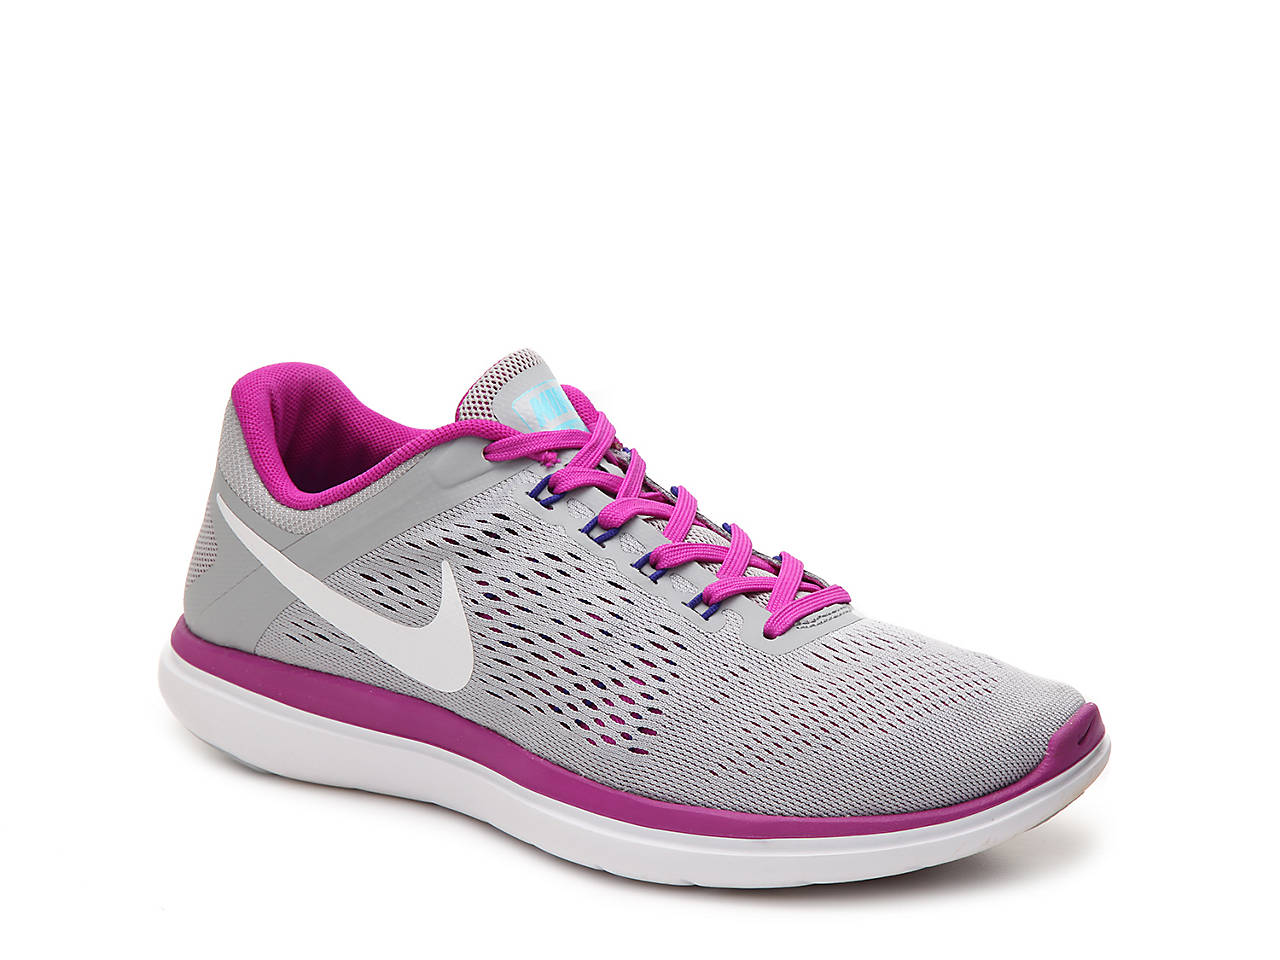 e0c9a0eea Nike Flex 2016 RN Lightweight Running Shoe - Women s Women s Shoes